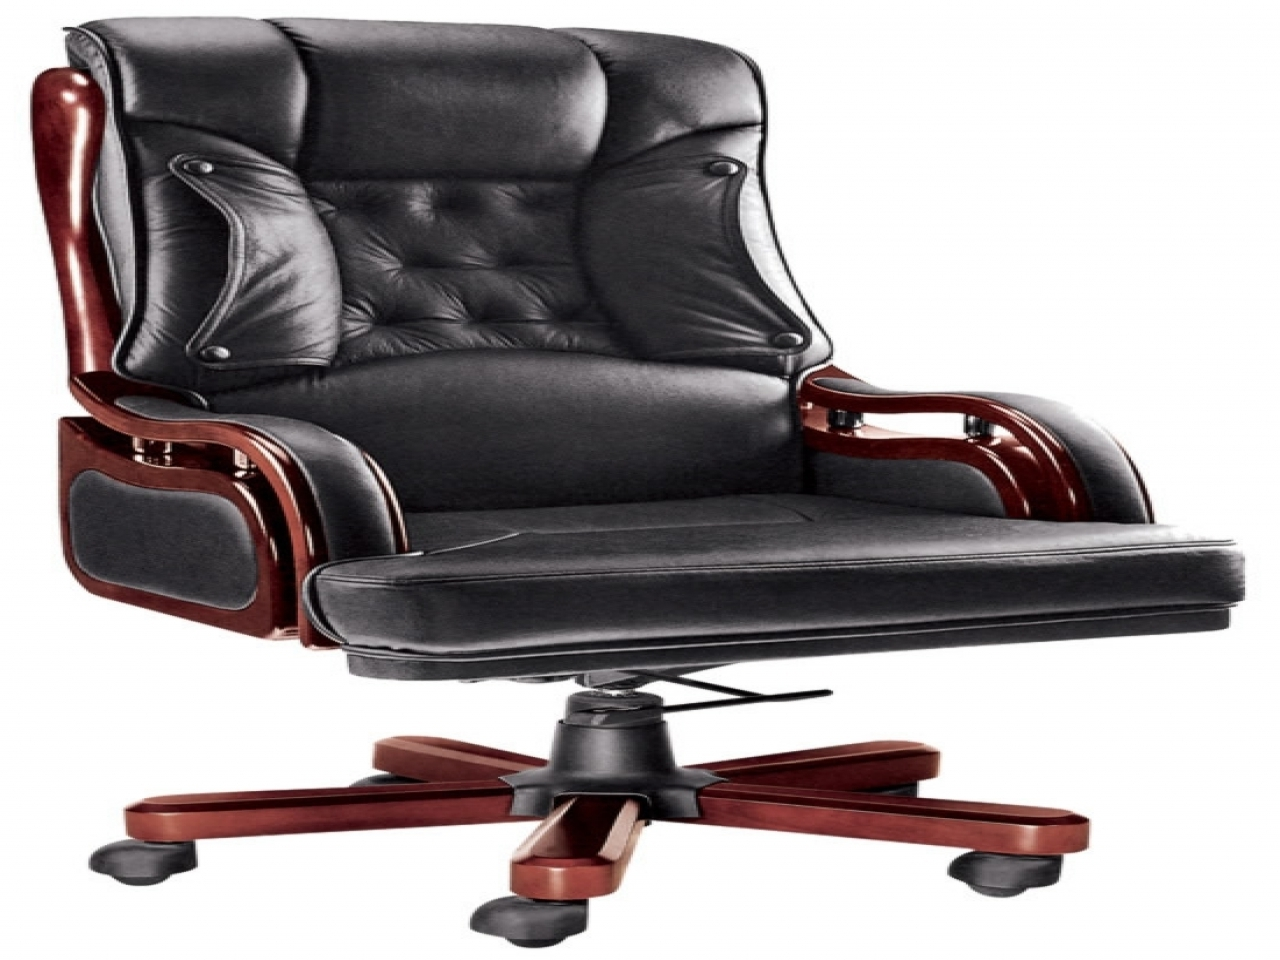 2019 Modern Leather Chairs, Executive Leather Office Chairs Large Regarding Large Executive Office Chairs (View 1 of 20)